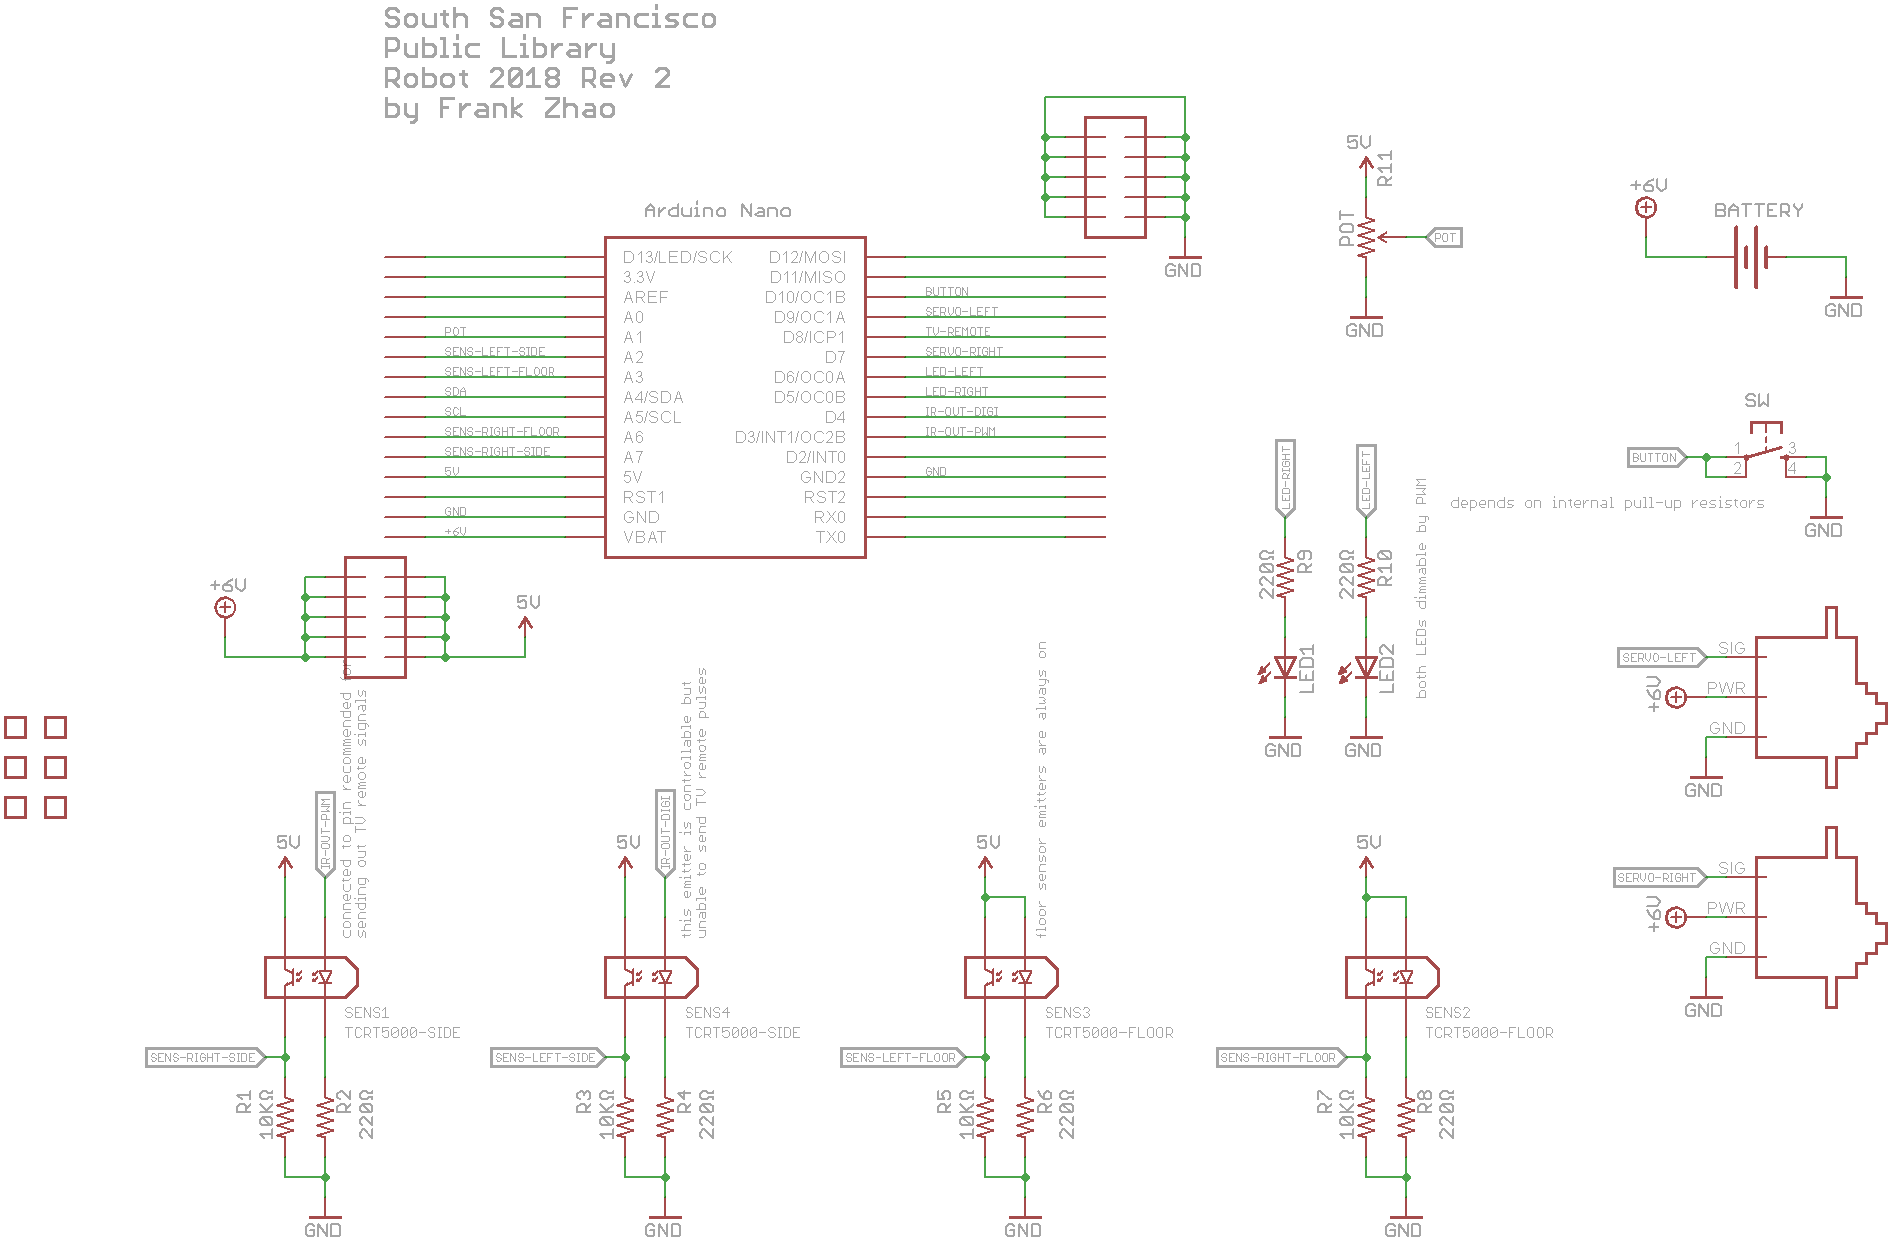 Our Robots Circuit A Is Diagram Drawing That Has Symbols And Lines In It To Show How Components Are Connected Here Below I Will You The